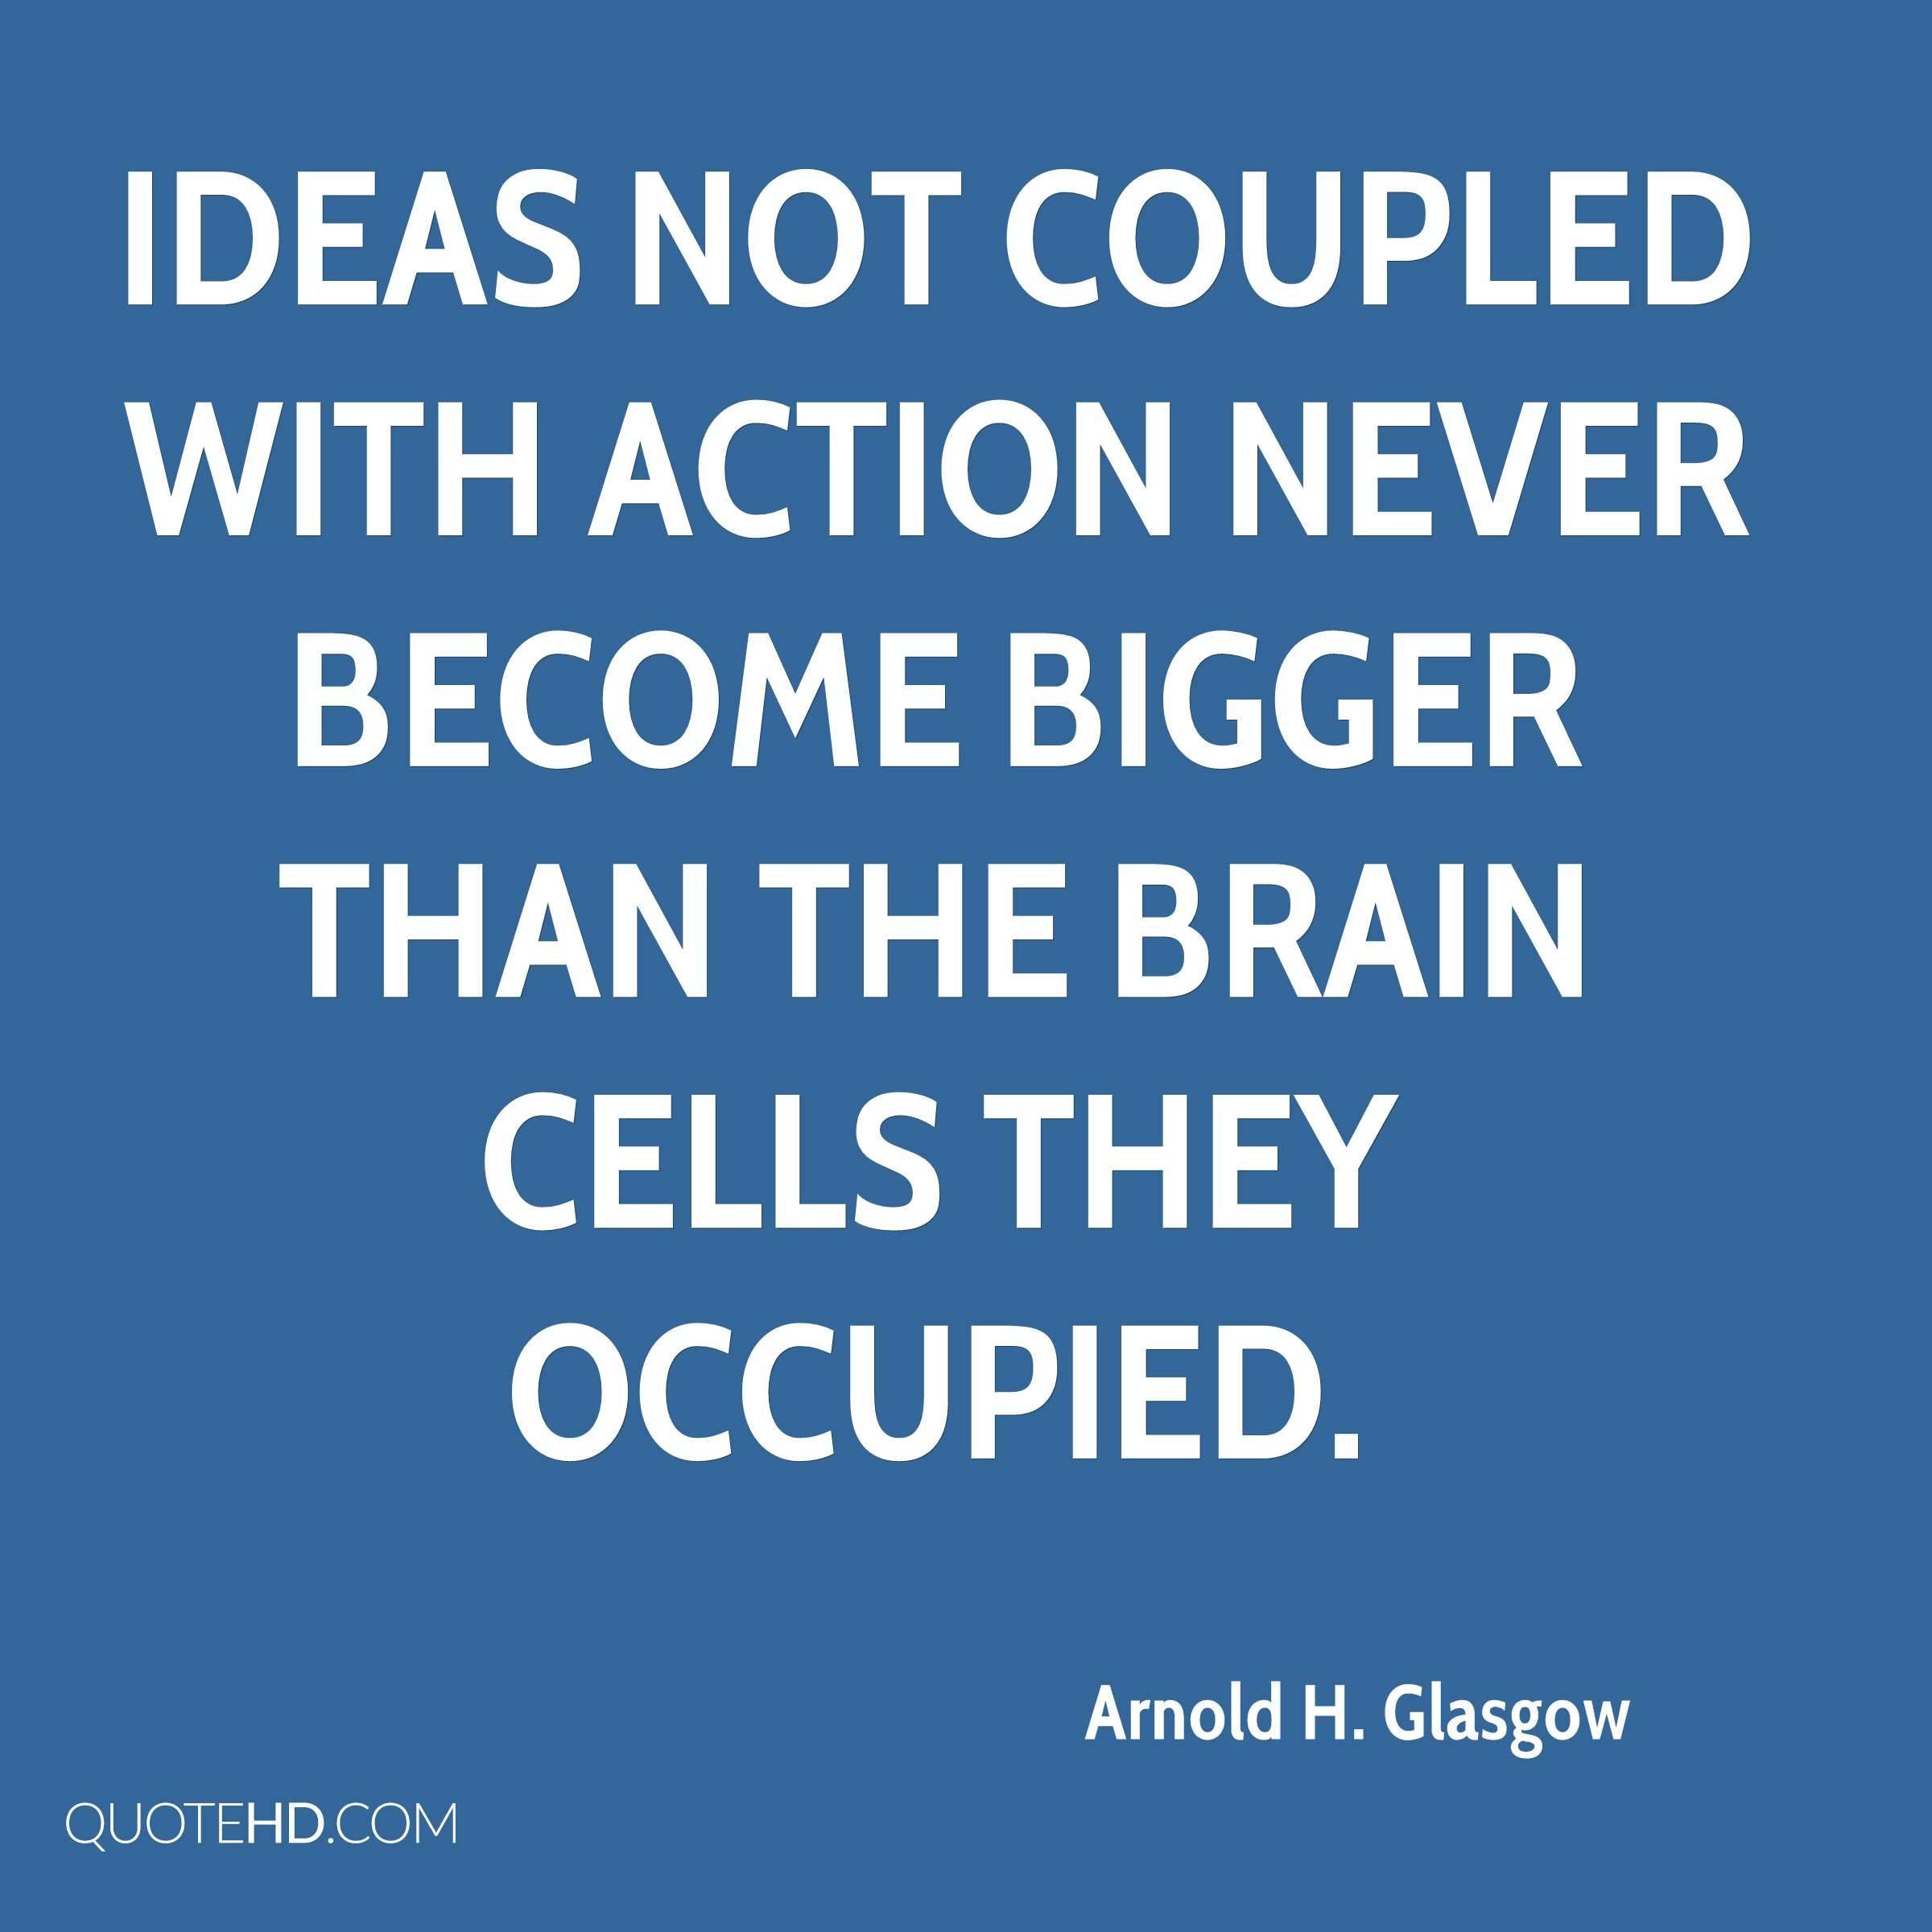 Ideas not coupled with action never become bigger than the brain cells they occupied.